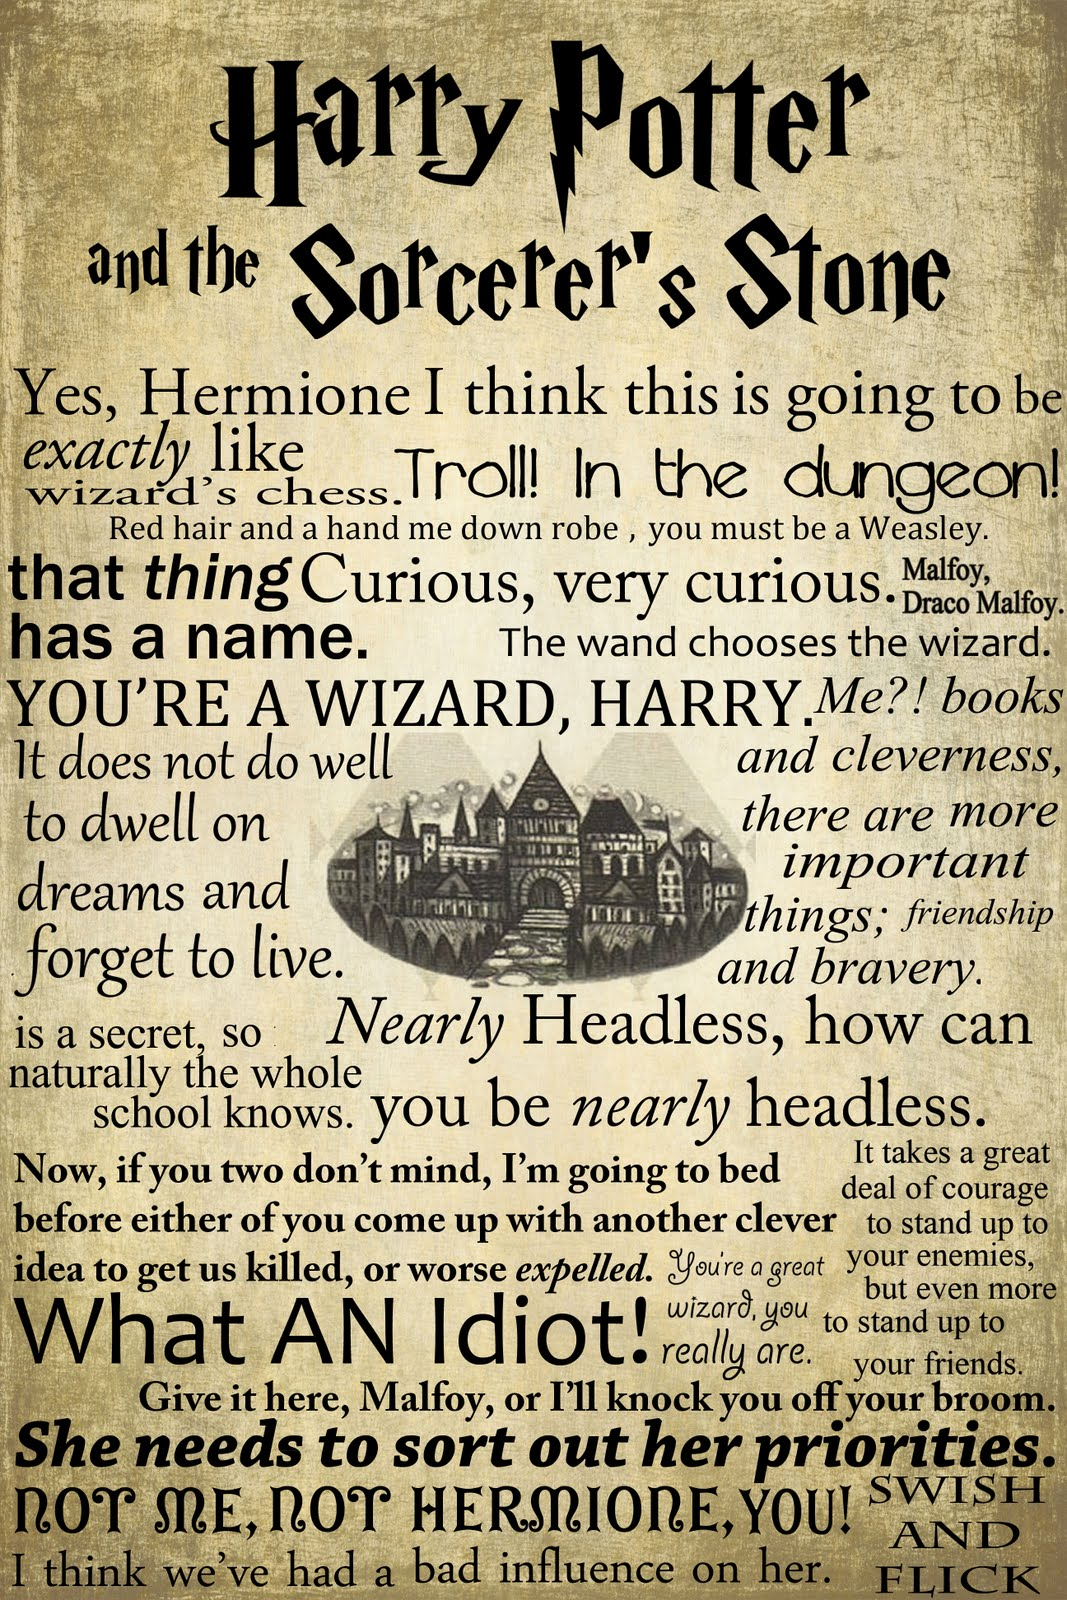 Funny Harry Potter Book Quotes. QuotesGram